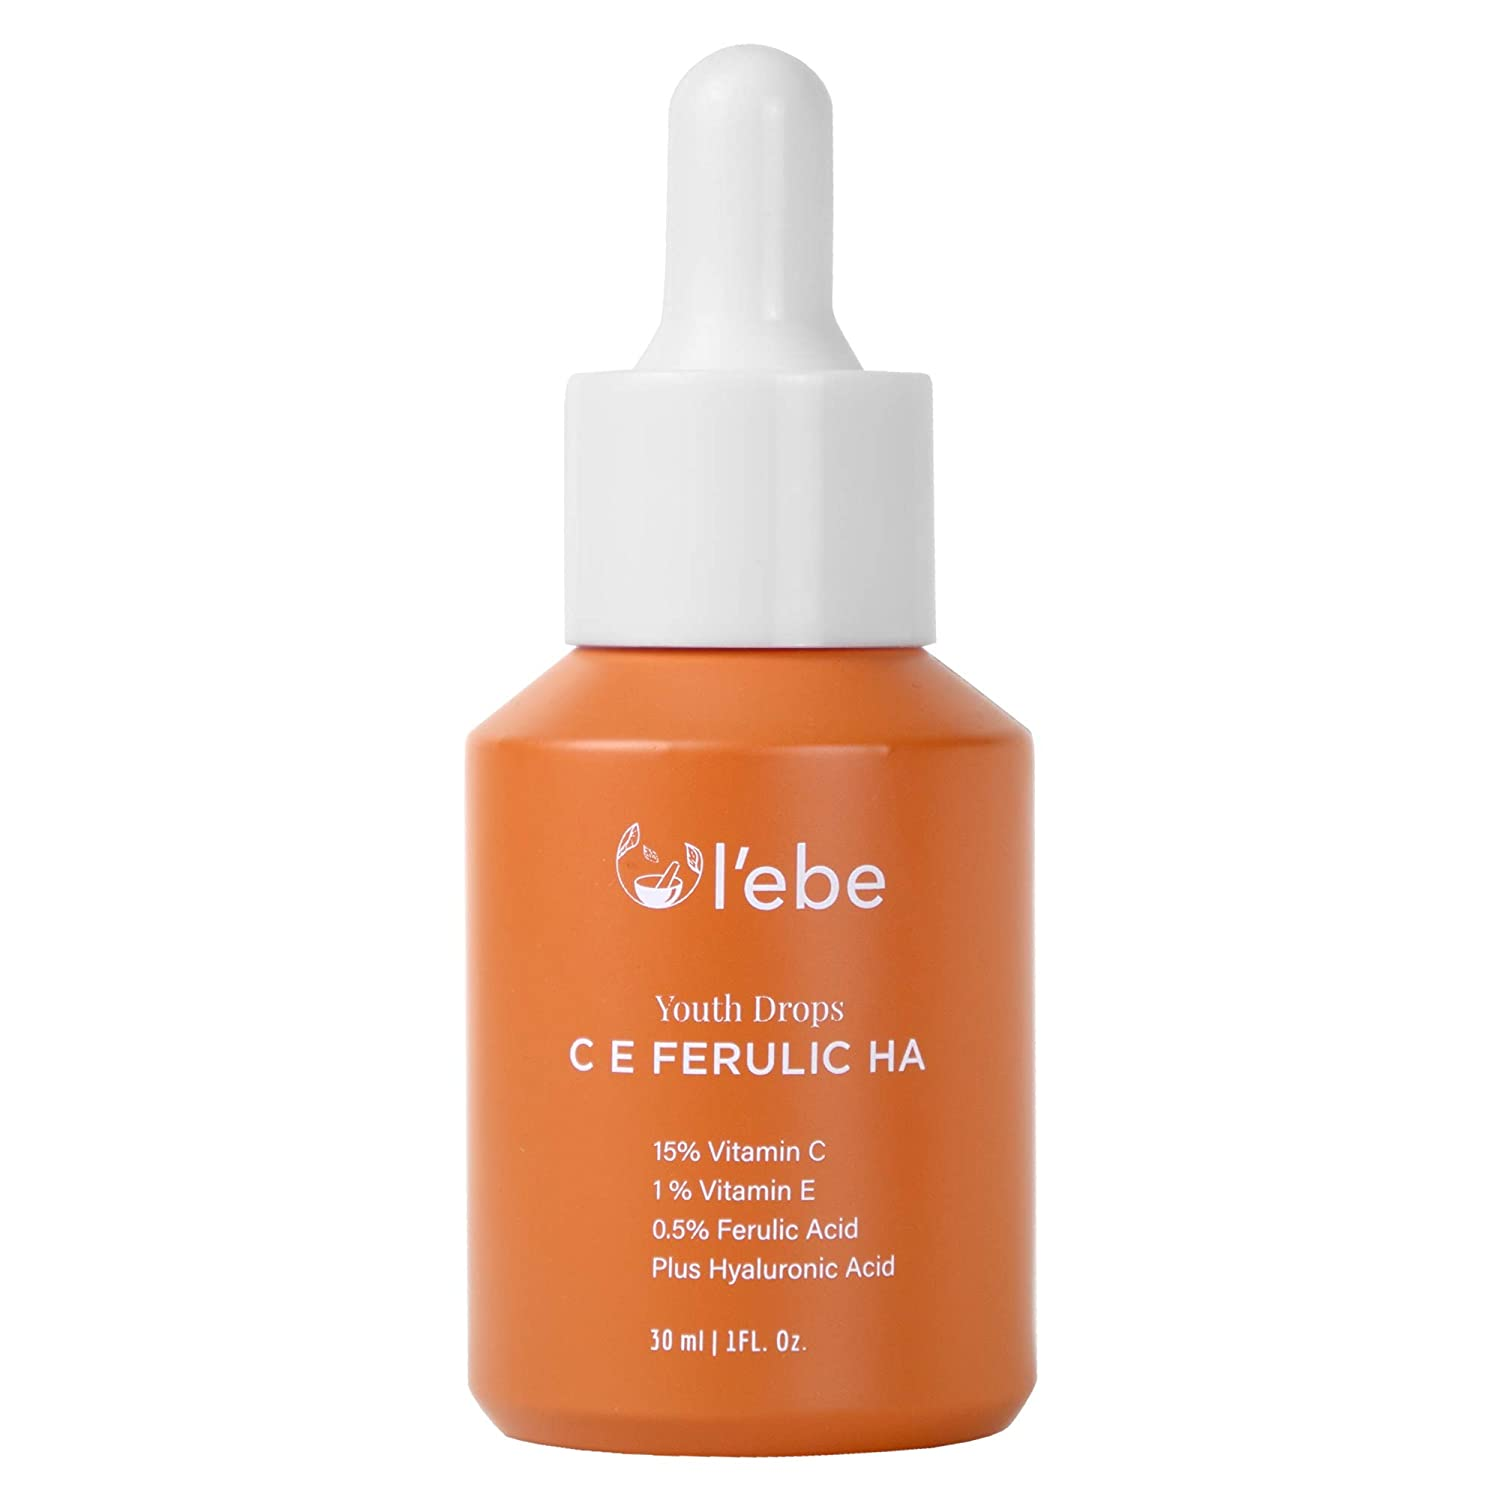 15% Pure New arrival Vitamin C + B E Hyaluronic Acid Serum Face An Ferulic SEAL limited product